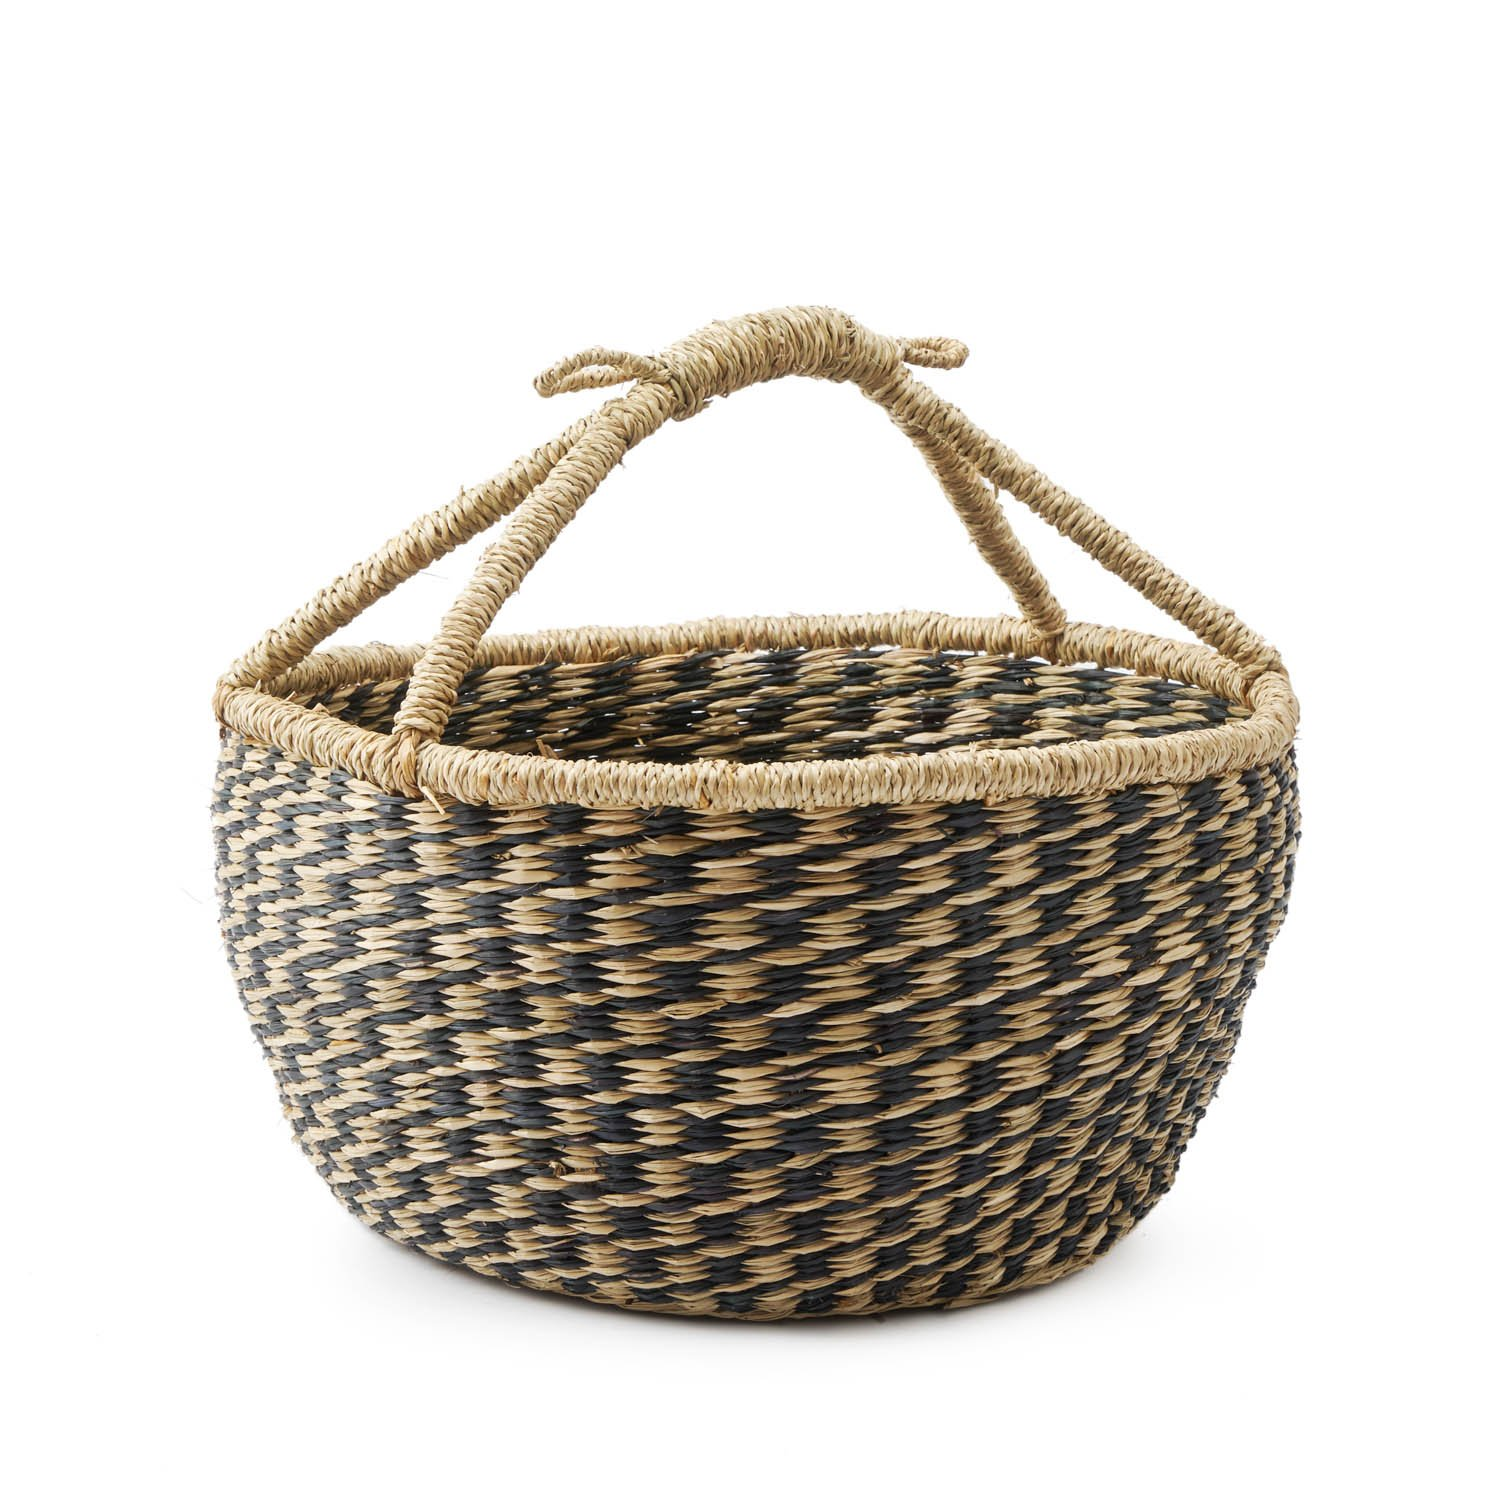 Black Velvet Studio Basket Jakarta , color black and Natural. Circular, very attractive Natural texture, artisan product, Frutero 26x32x32 cm. Black Velvet Studio S.L.U.